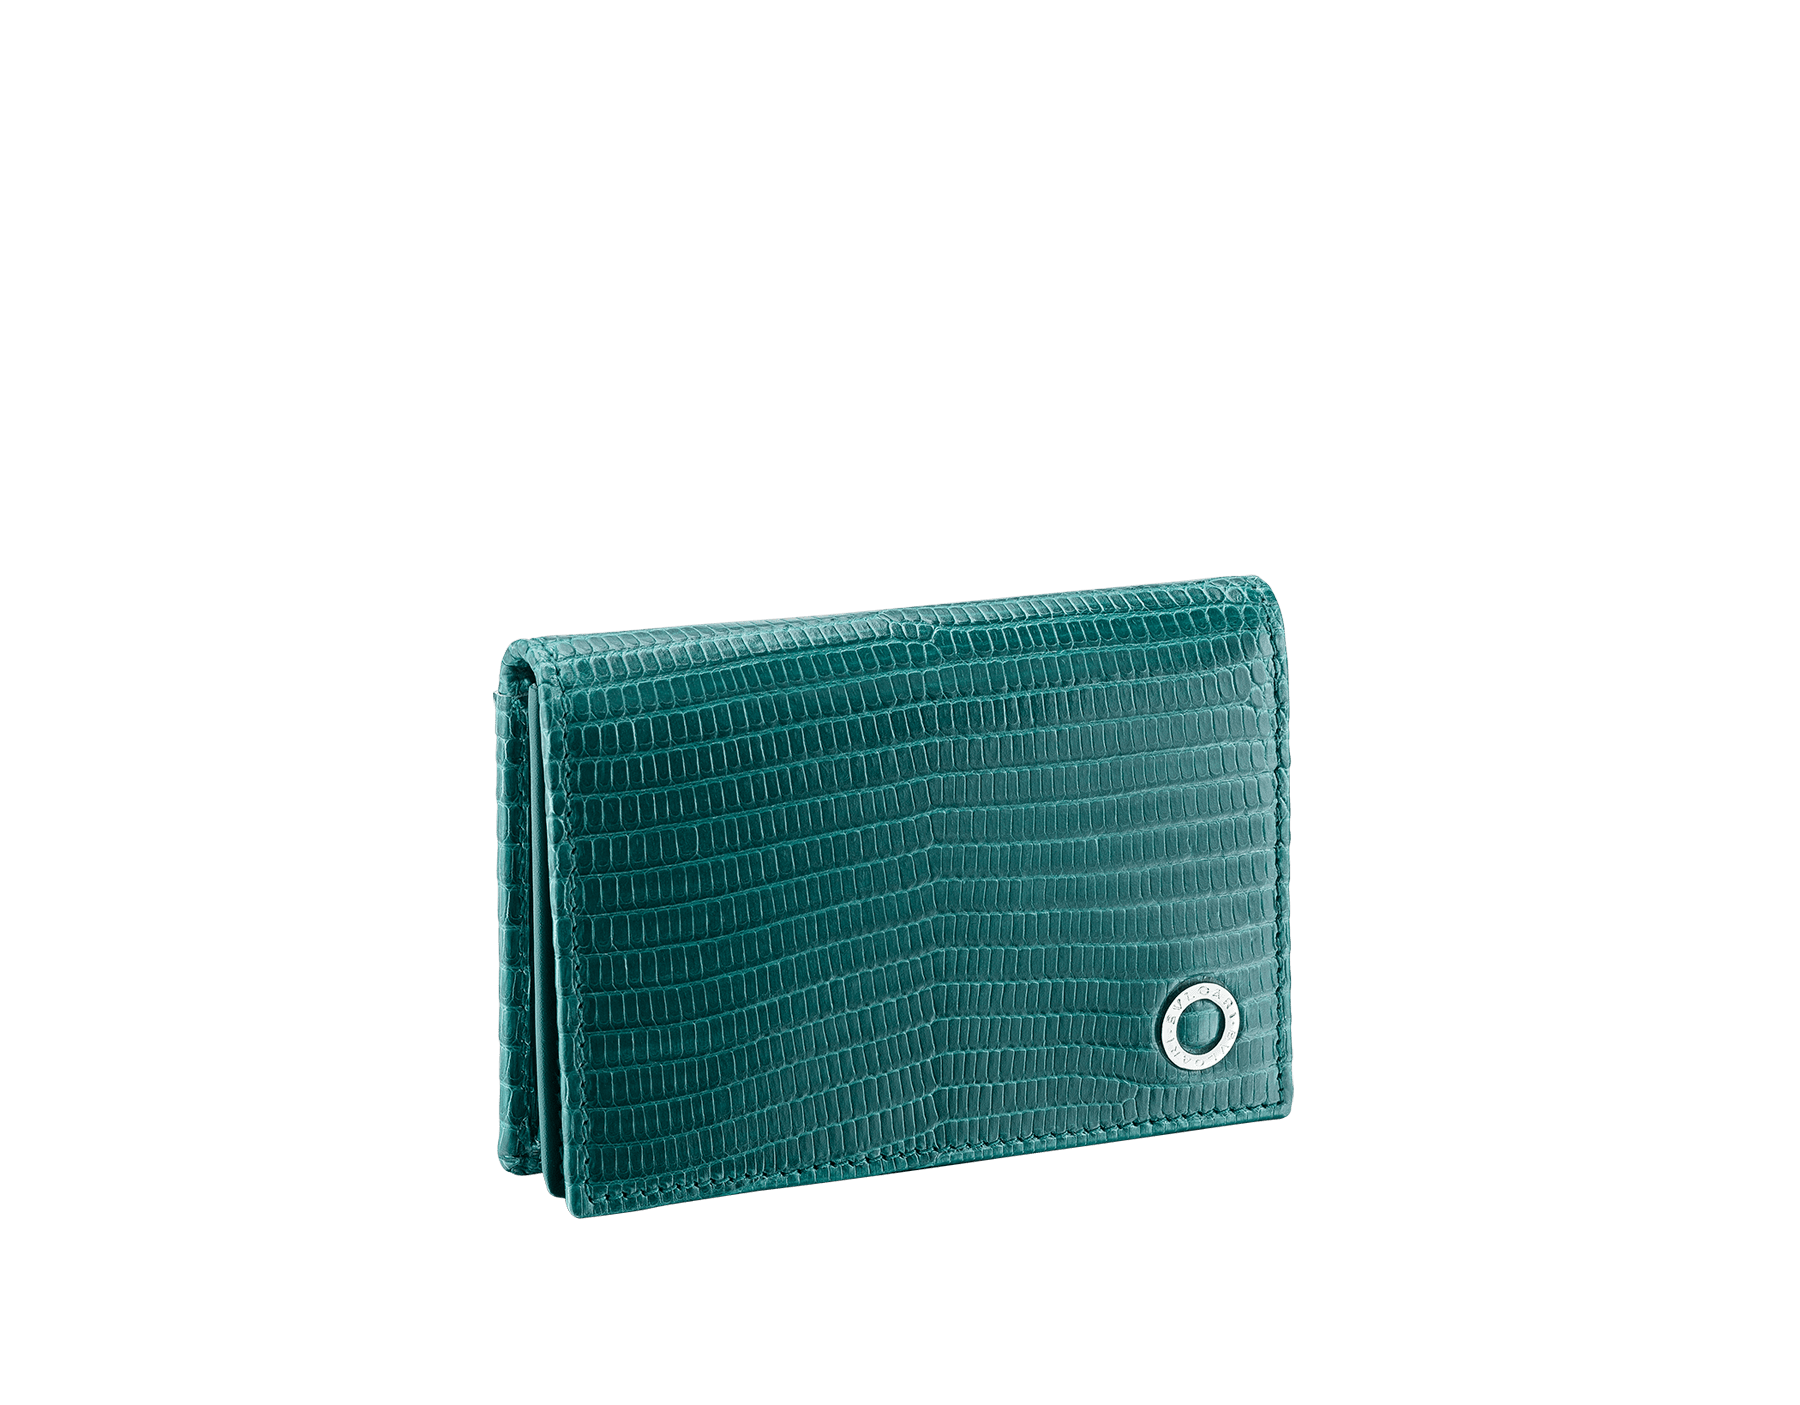 BVLGARI BVLGARI business card holder in forest emerald shiny lizard skin, with brass palladium plated logo décor. 289395 image 1